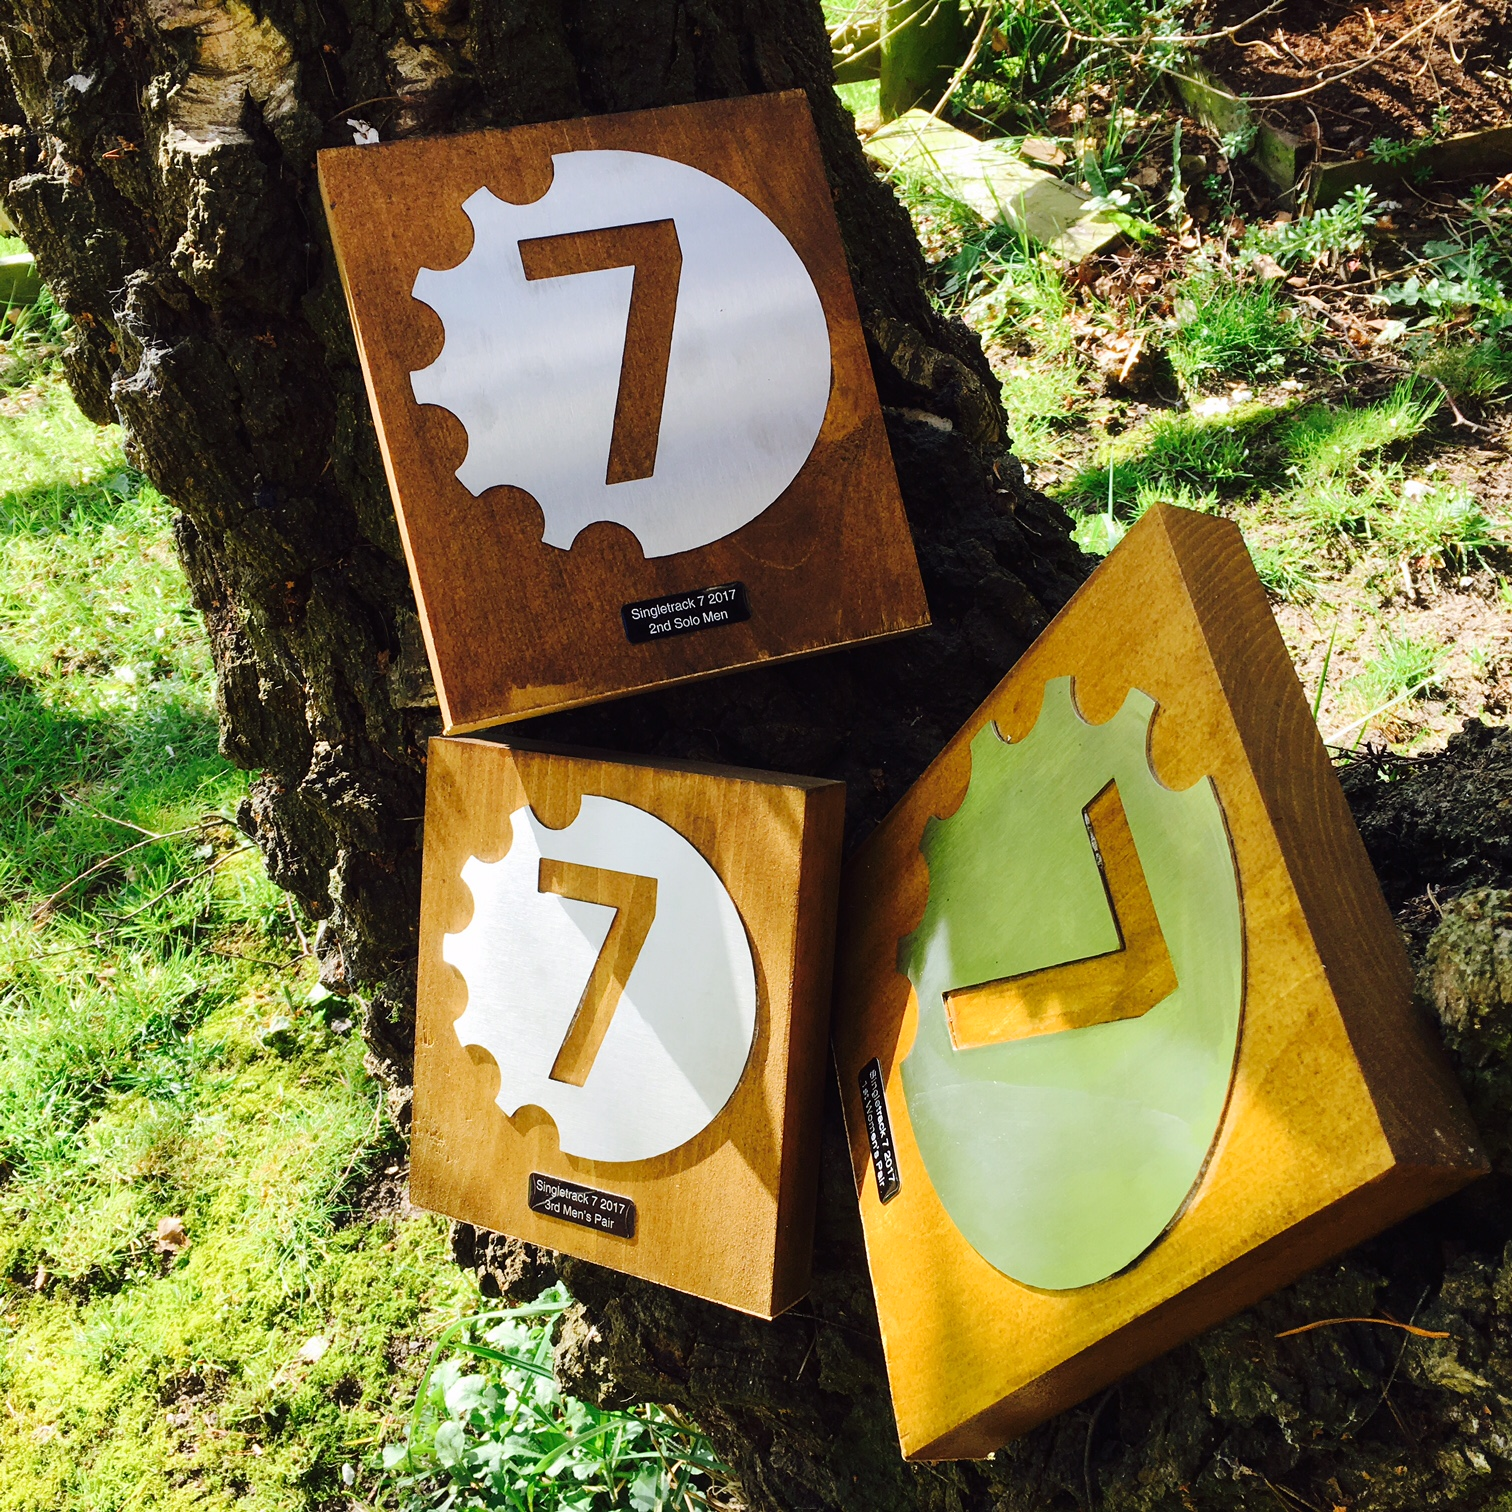 singletrack7 trophies